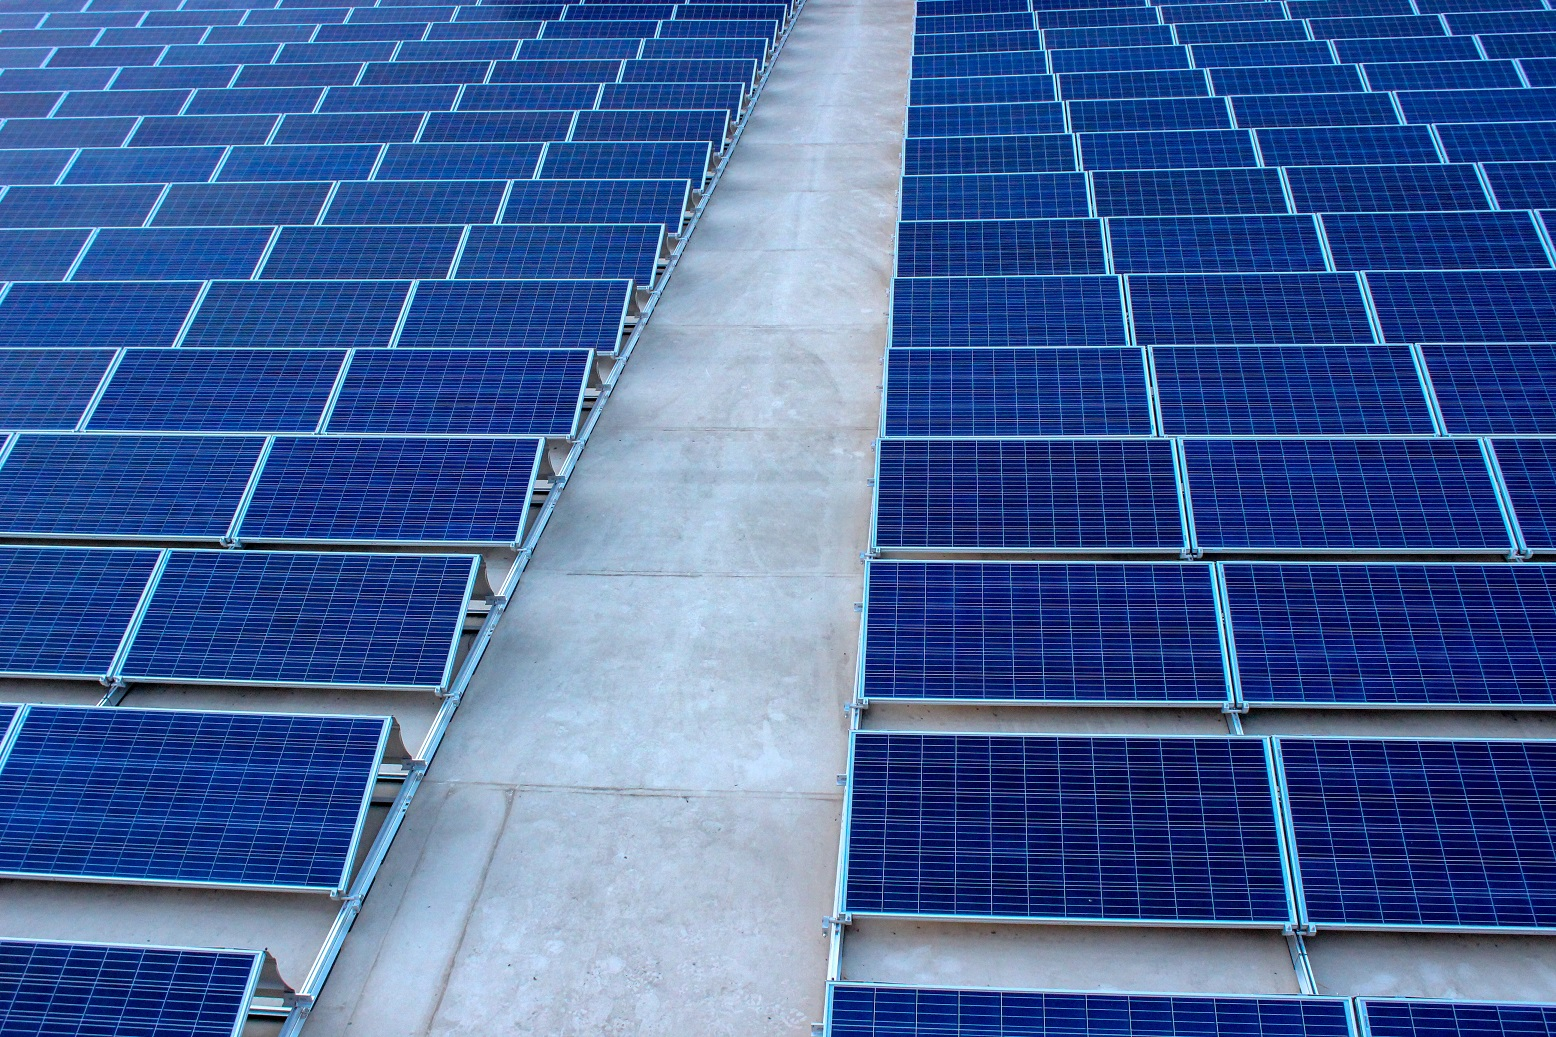 The Smarter Way To Switch Your Business To Solar Power